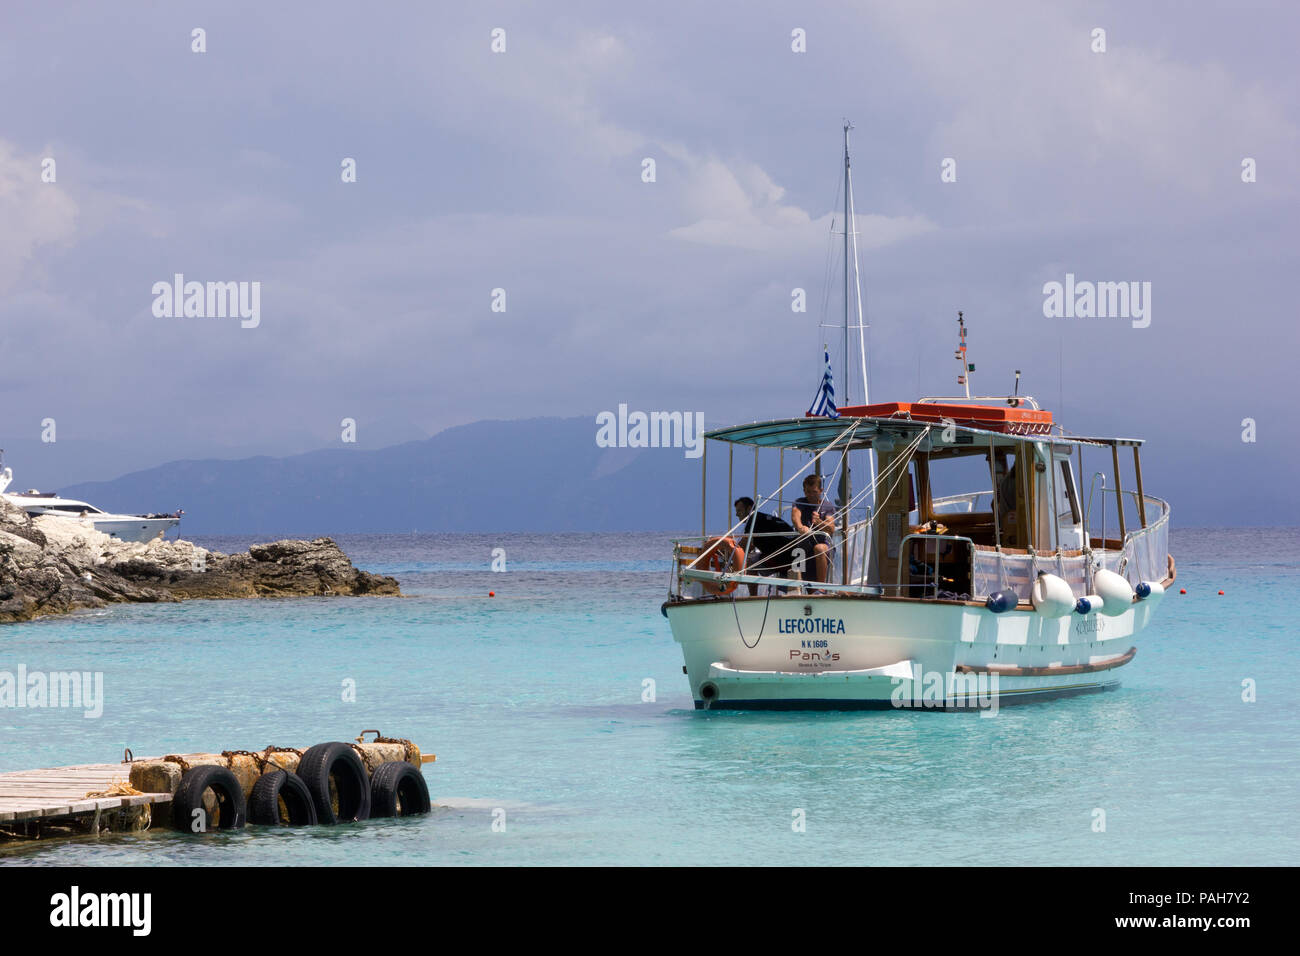 A small passenger ferry is moored up on the island of Antipaxos, Greece - Stock Image